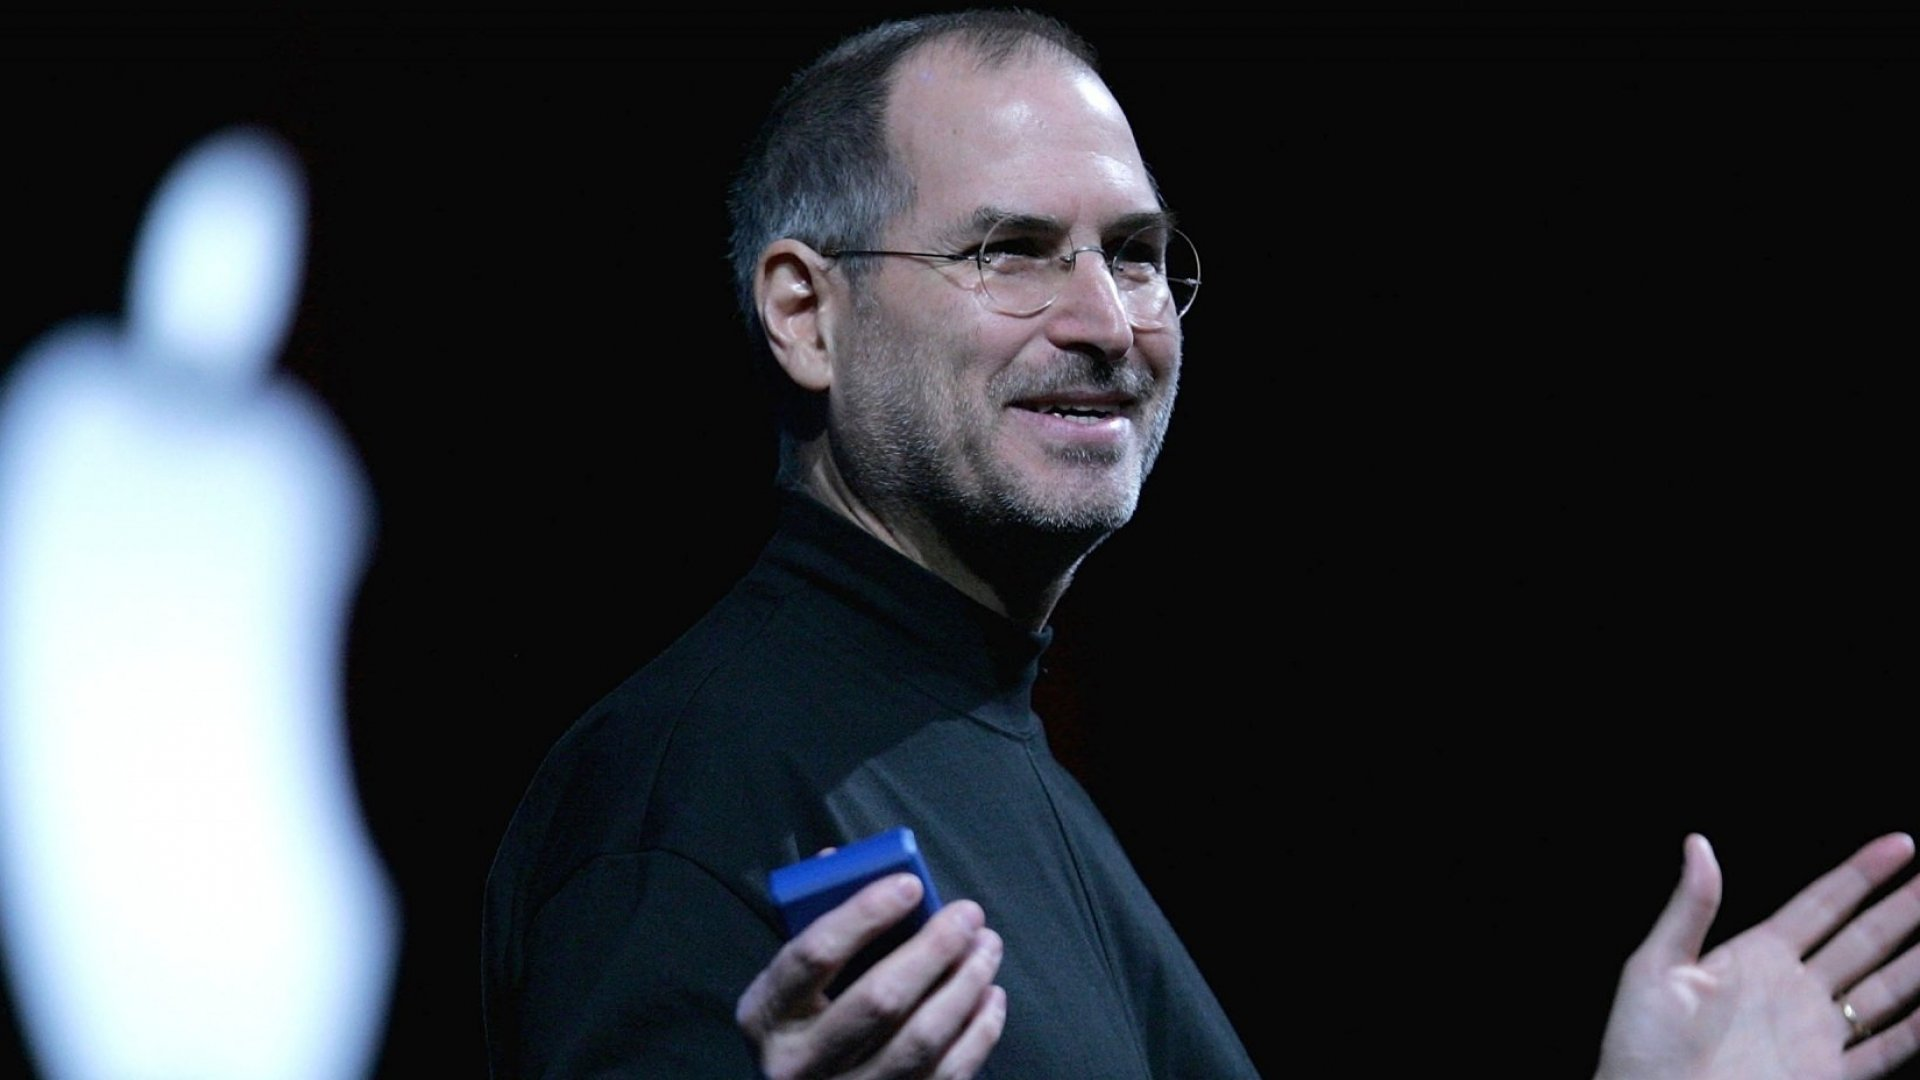 Channel Your Inner Steve Jobs With These 3 Simple Tips